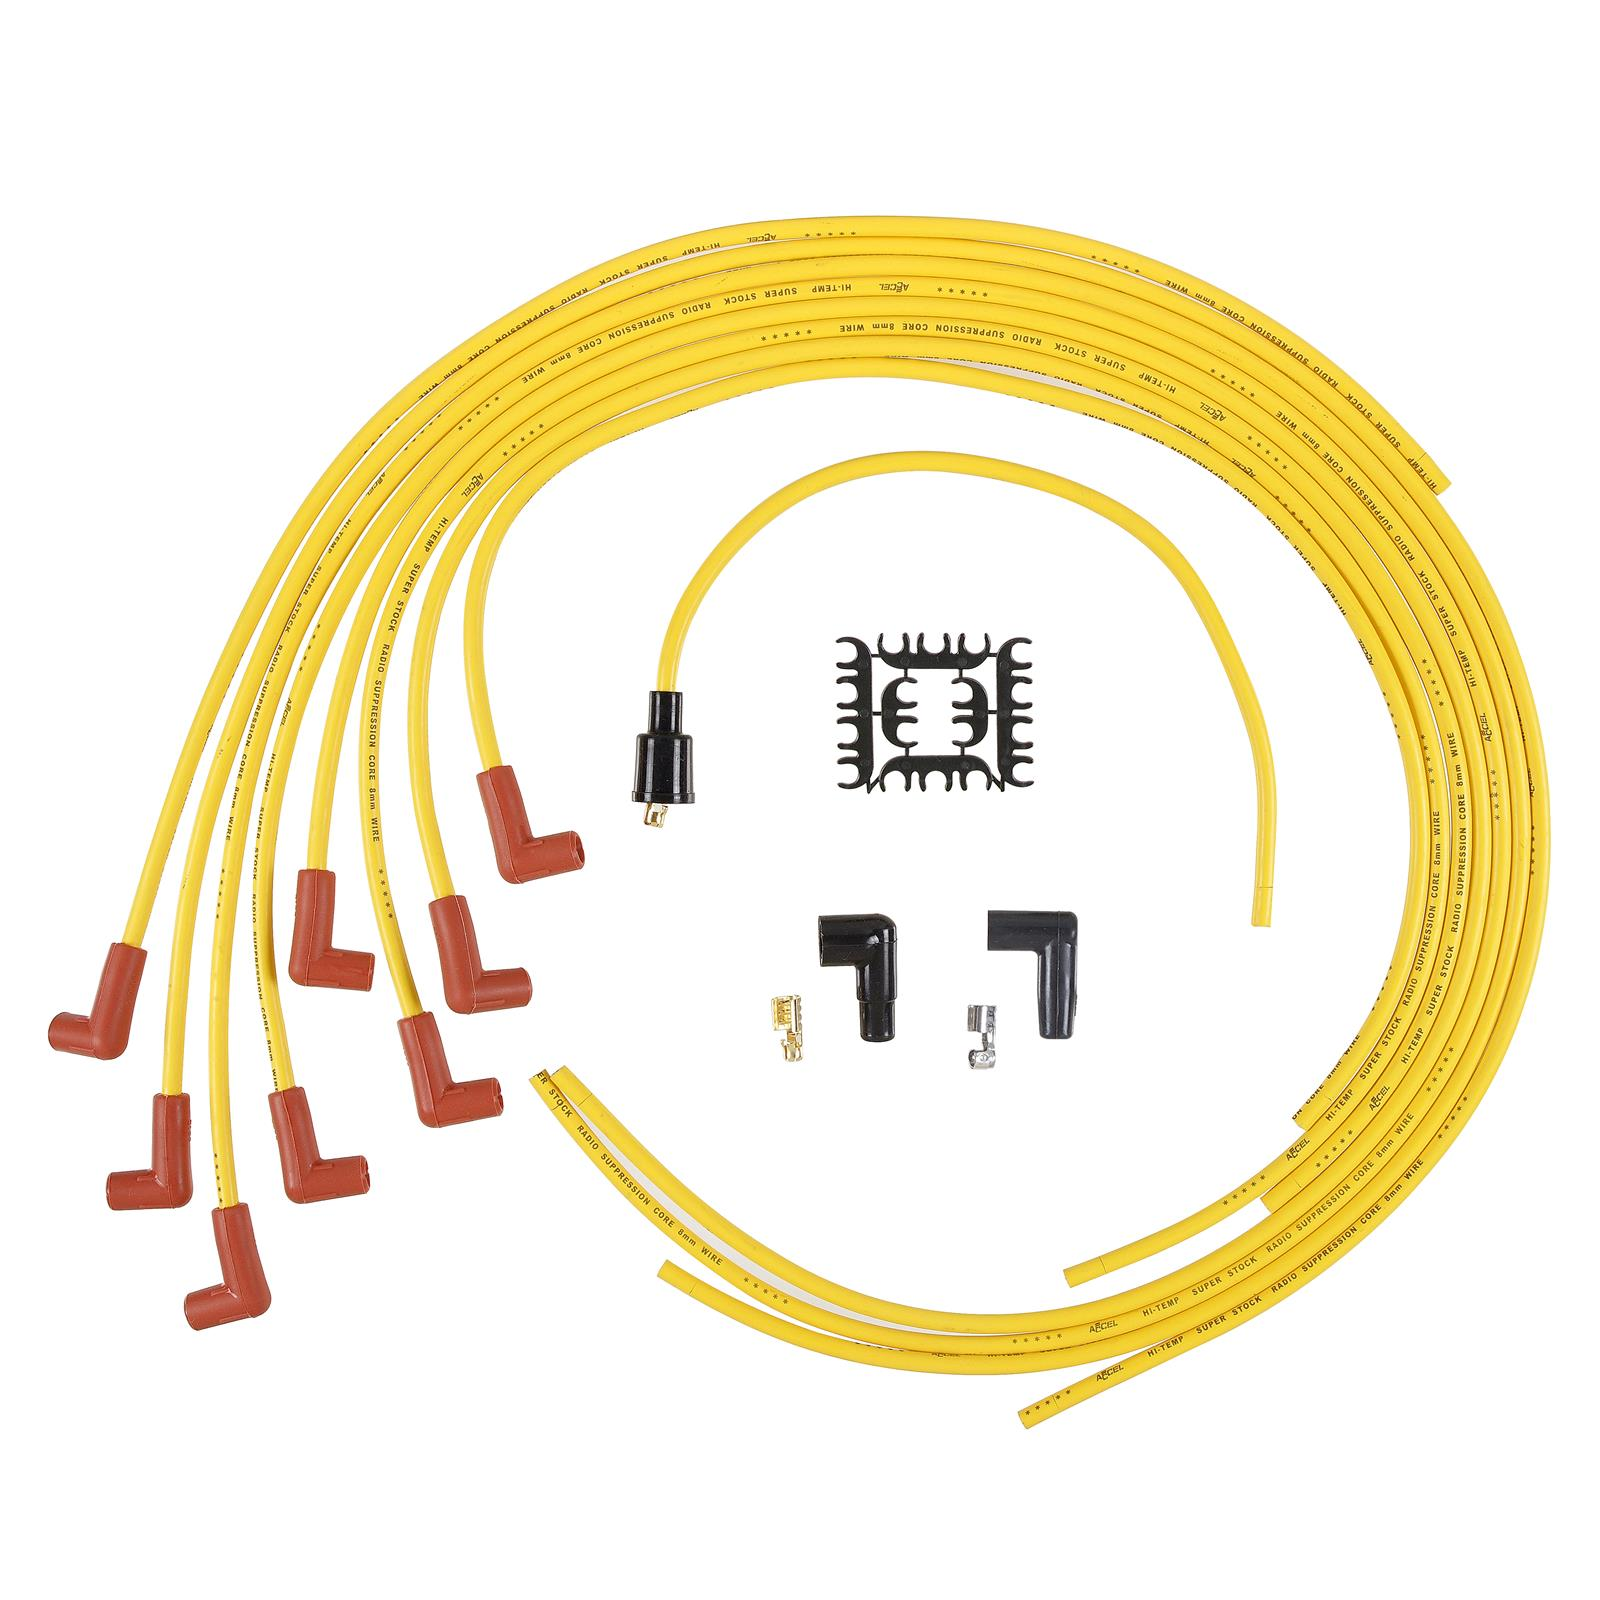 Accel Superstock 4000 Series Spark Plug Wire Sets 4041 Free Taylor Wiring Harness Shipping On Orders Over 99 At Summit Racing